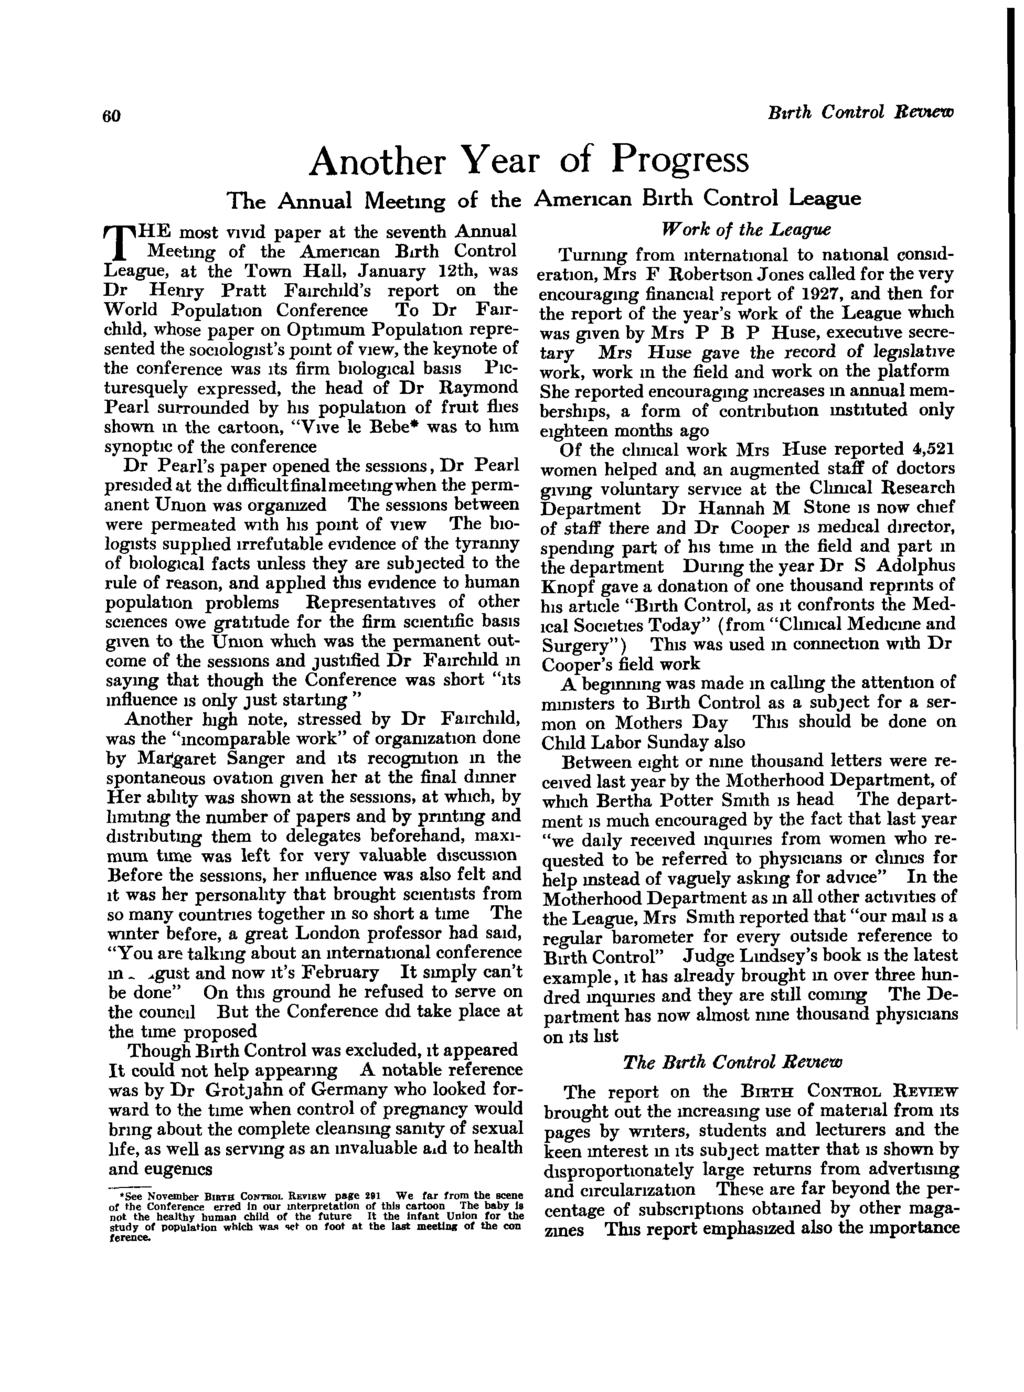 THE Another Year of Progress The Annual Meetlng of the most vlvid paper at the seventh Annual Meetmg of the American Birth Control League, at the Town Hall, January 12th, was Dr Henry Pratt